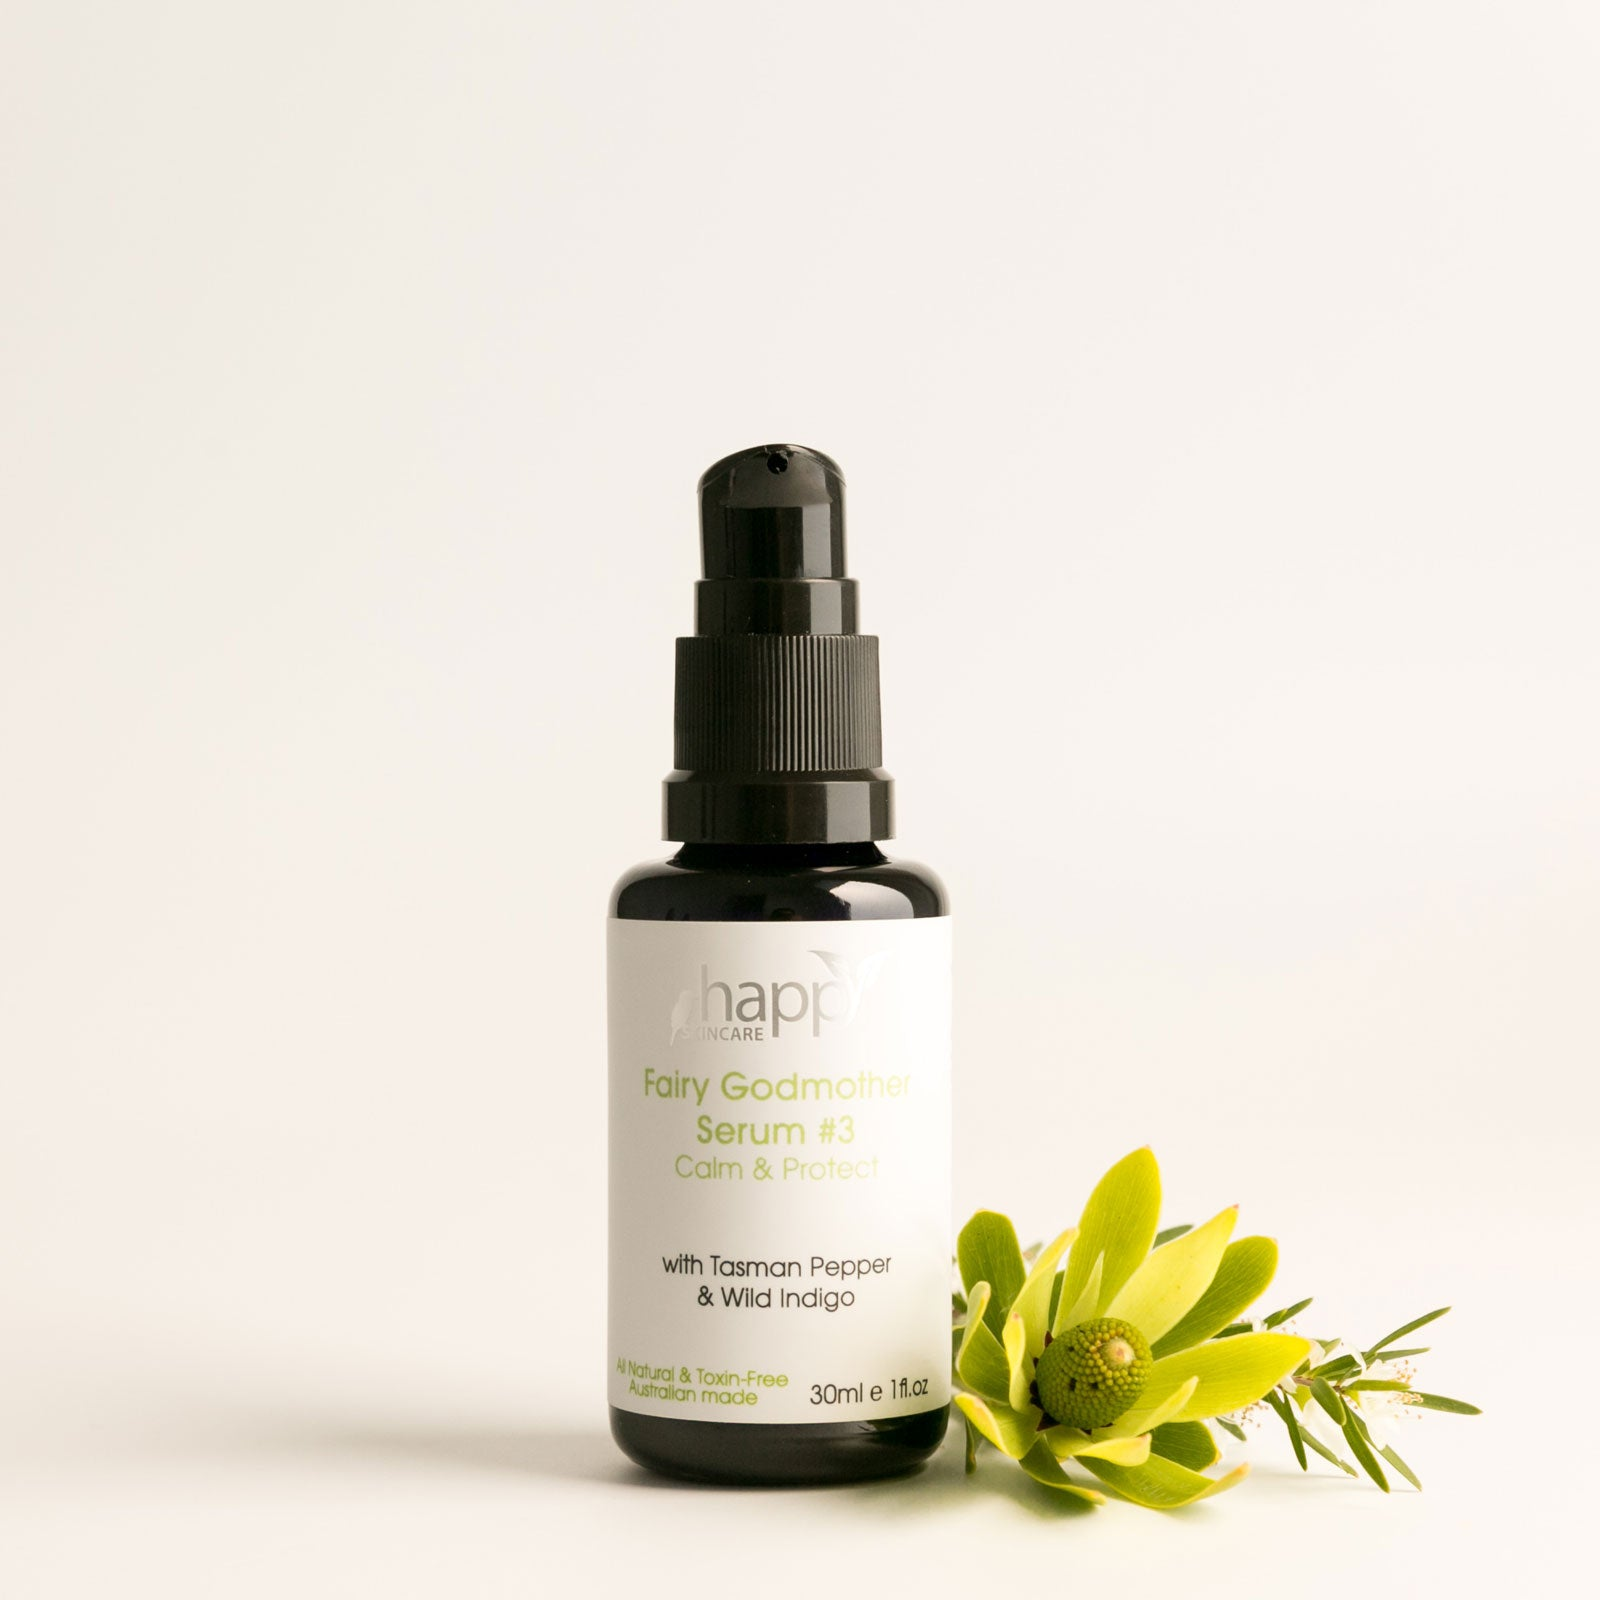 'Fairy Godmother' Serum #3 - Calm & Protect (redness and hypersensitivity)